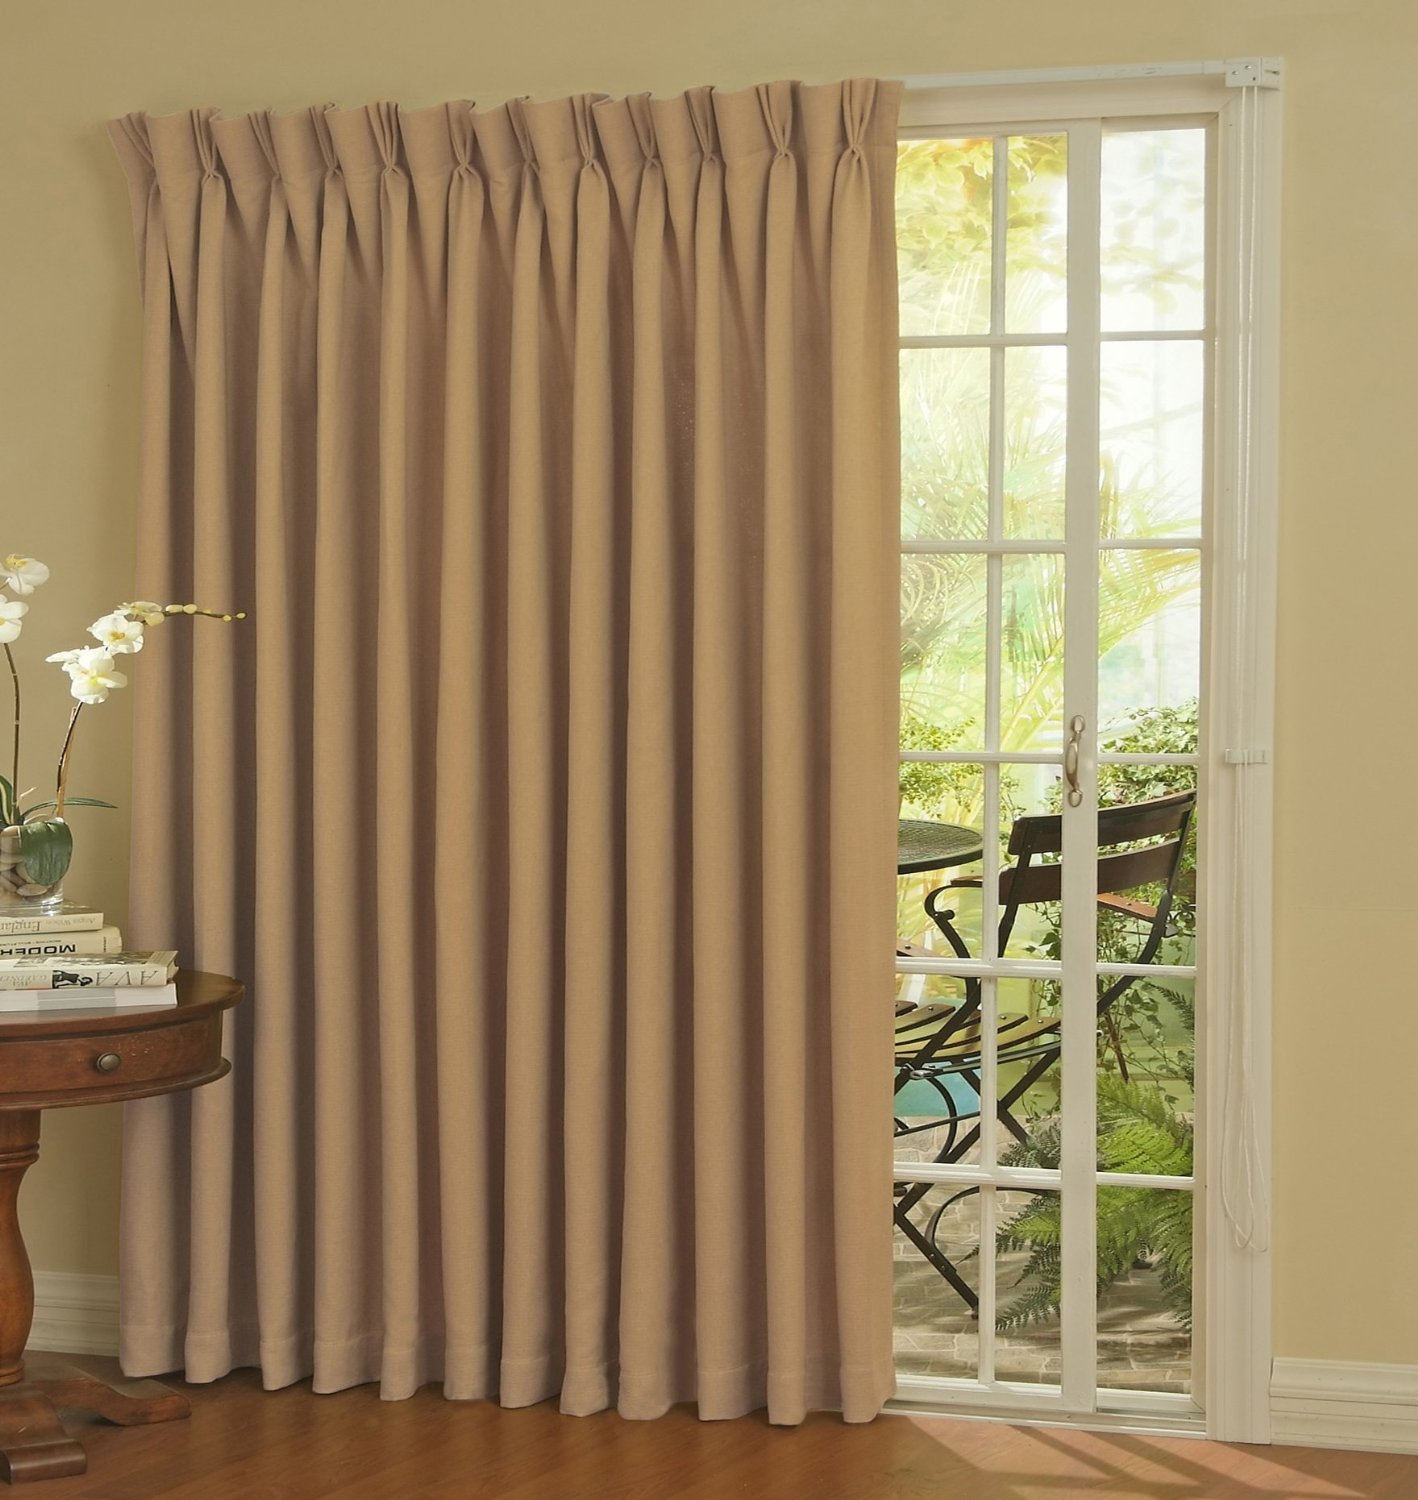 Door wall curtain ideas curtain menzilperde net for Door net curtains